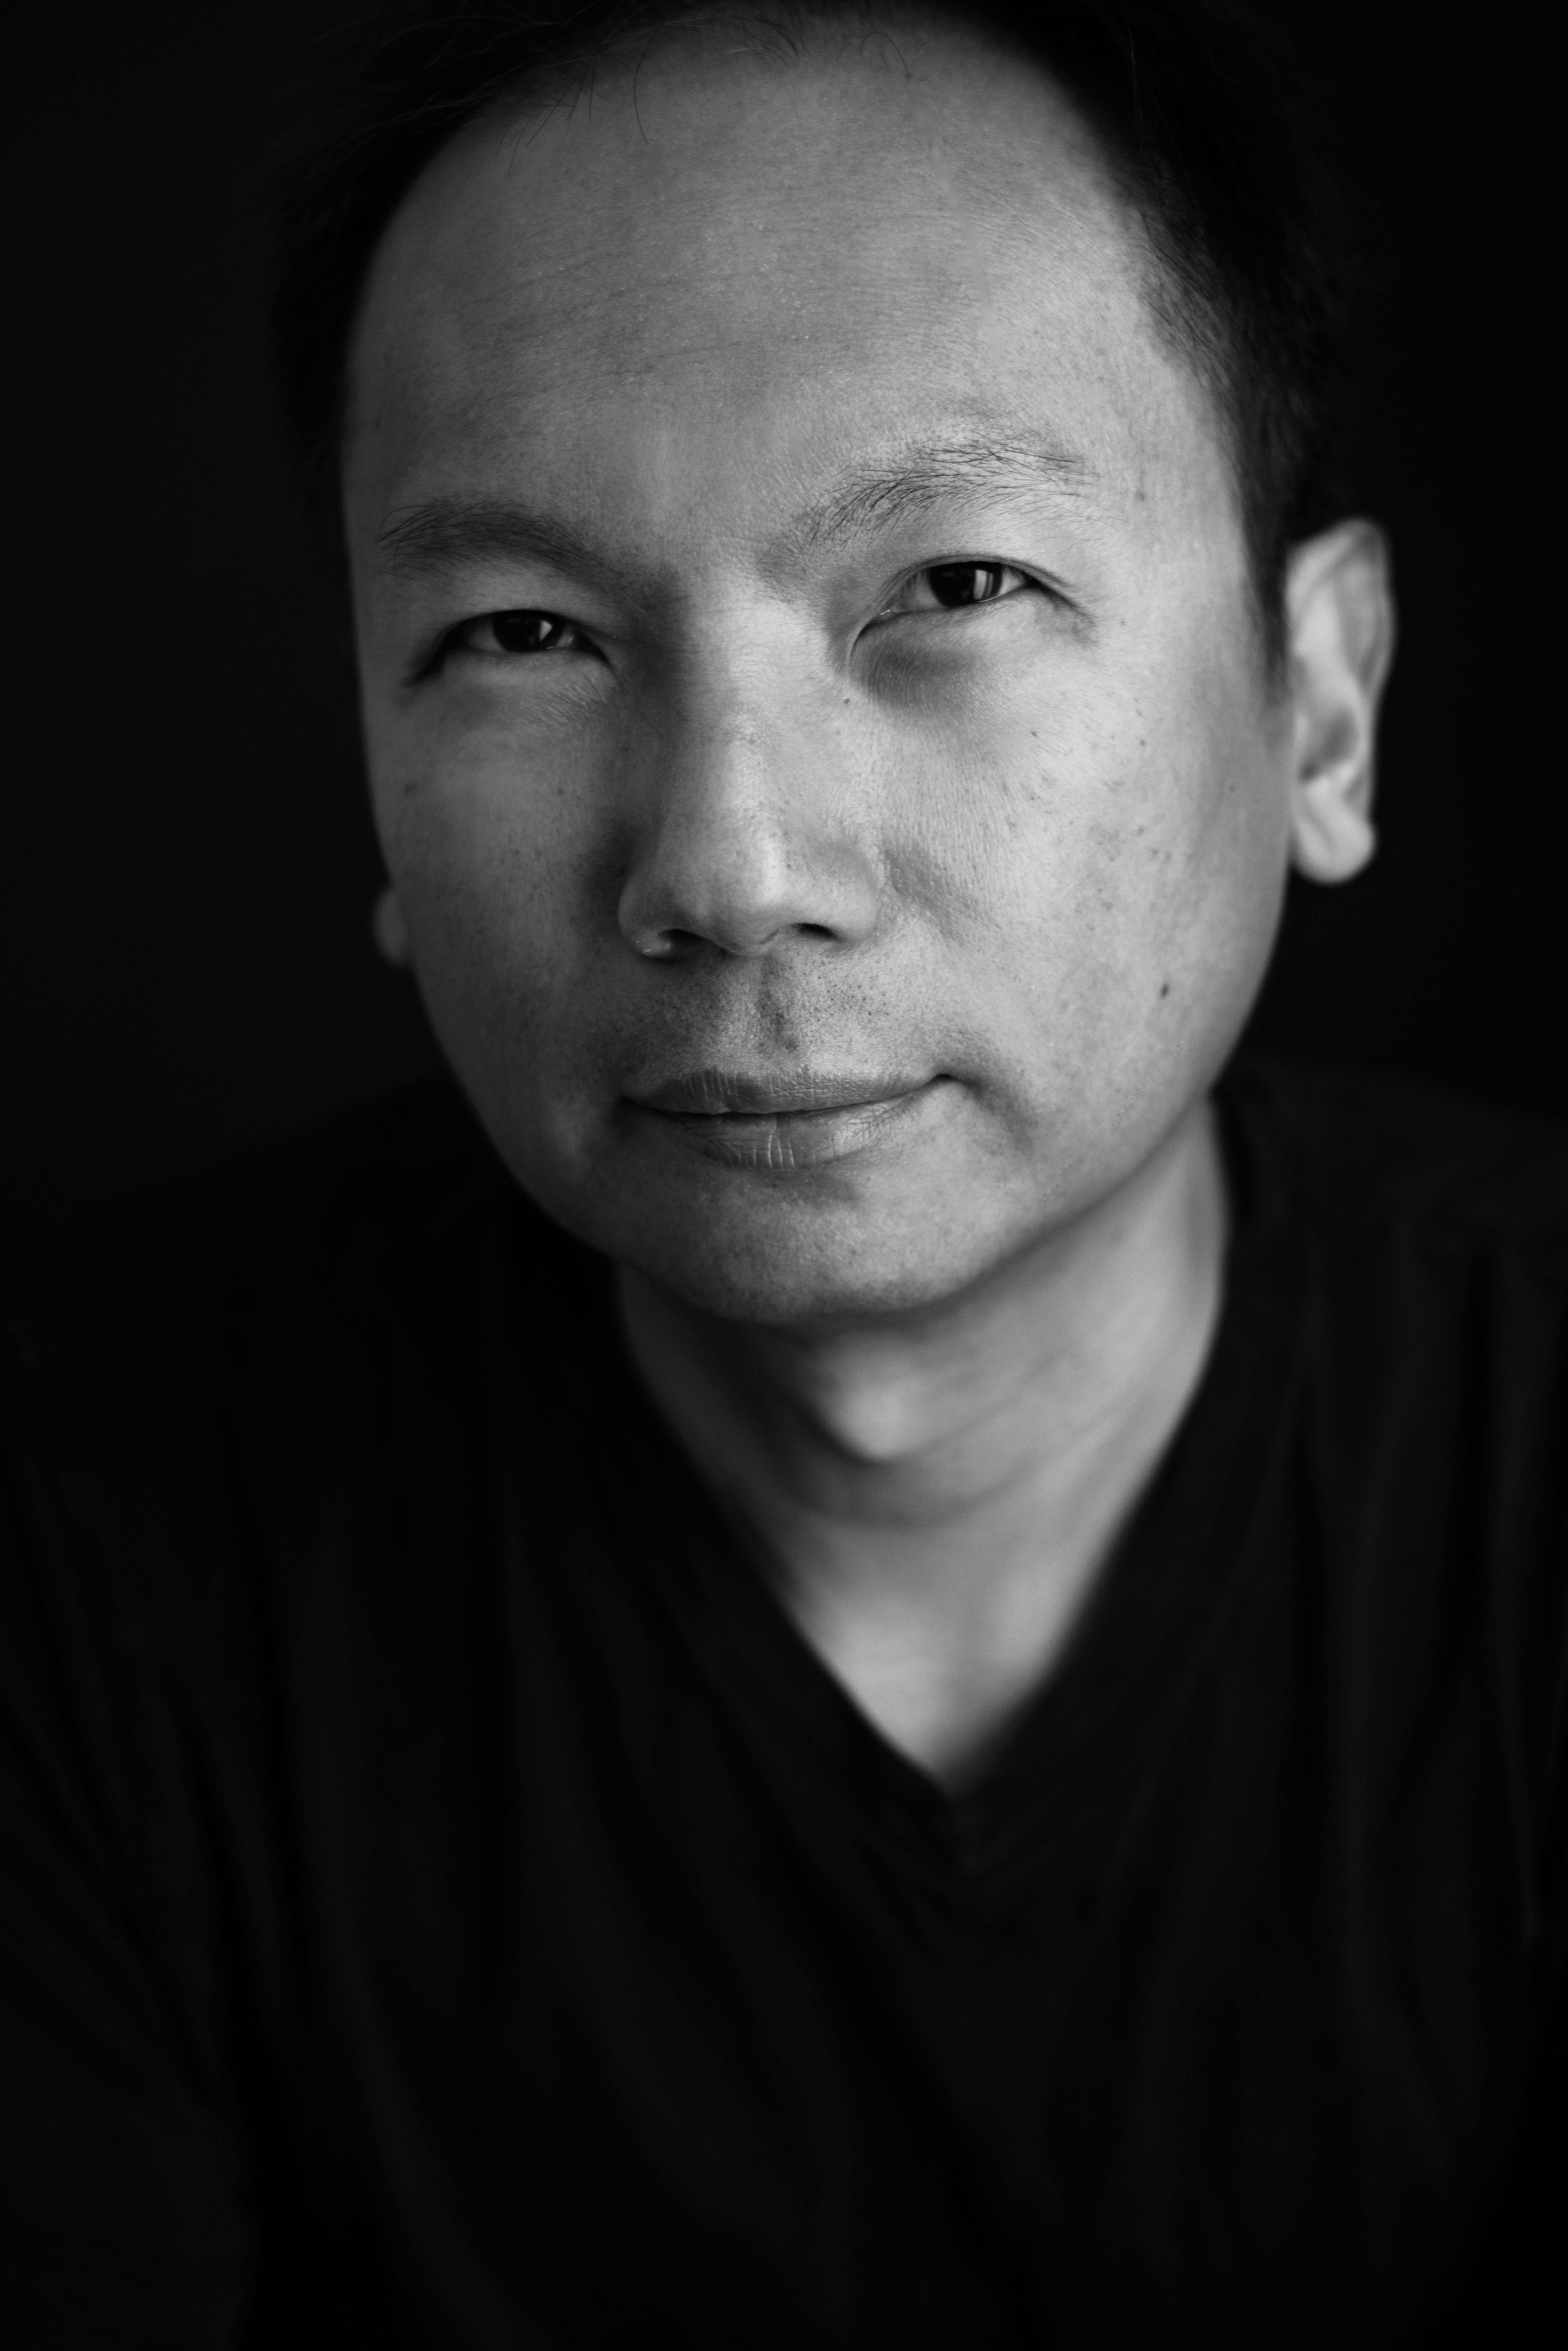 About Phuc Luu - Born in Vietnam and raised in Houston, Texas, Phuc Luu is creating a place in his work where art, philosophy, and theology intersect.